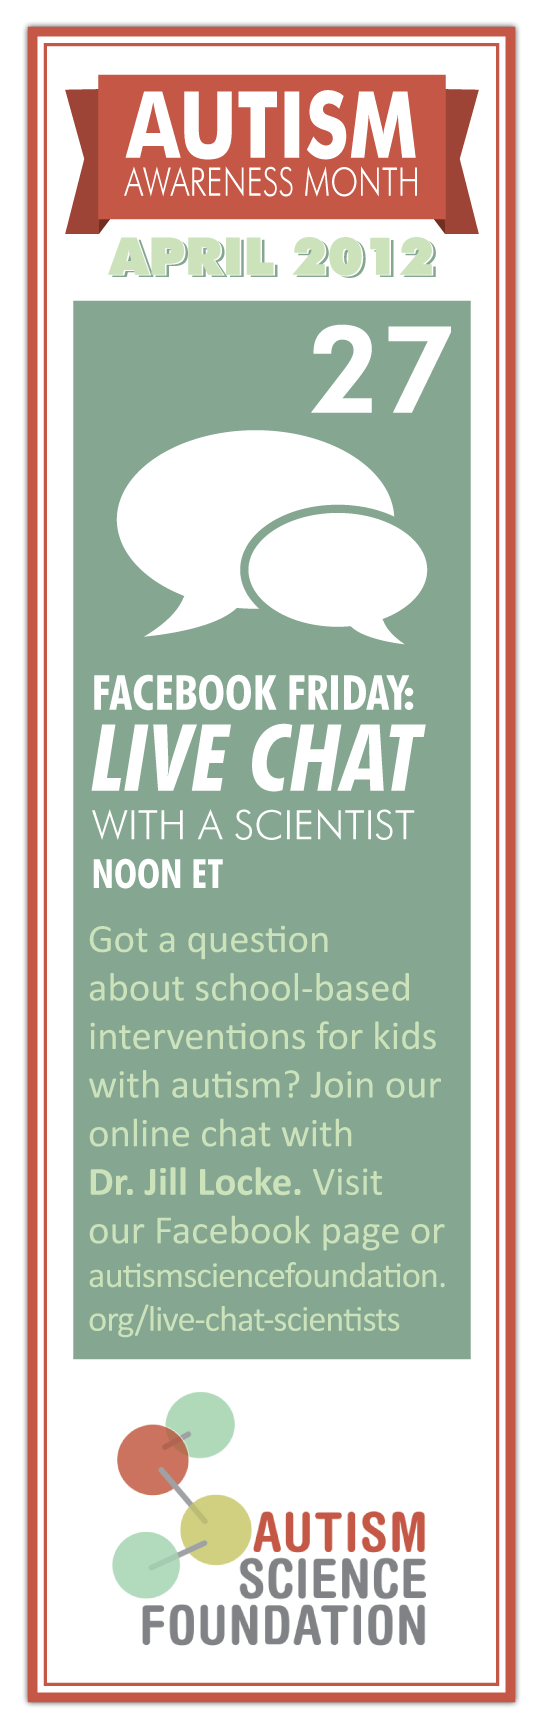 Facebook friday live chat with a scientist noon et got a question